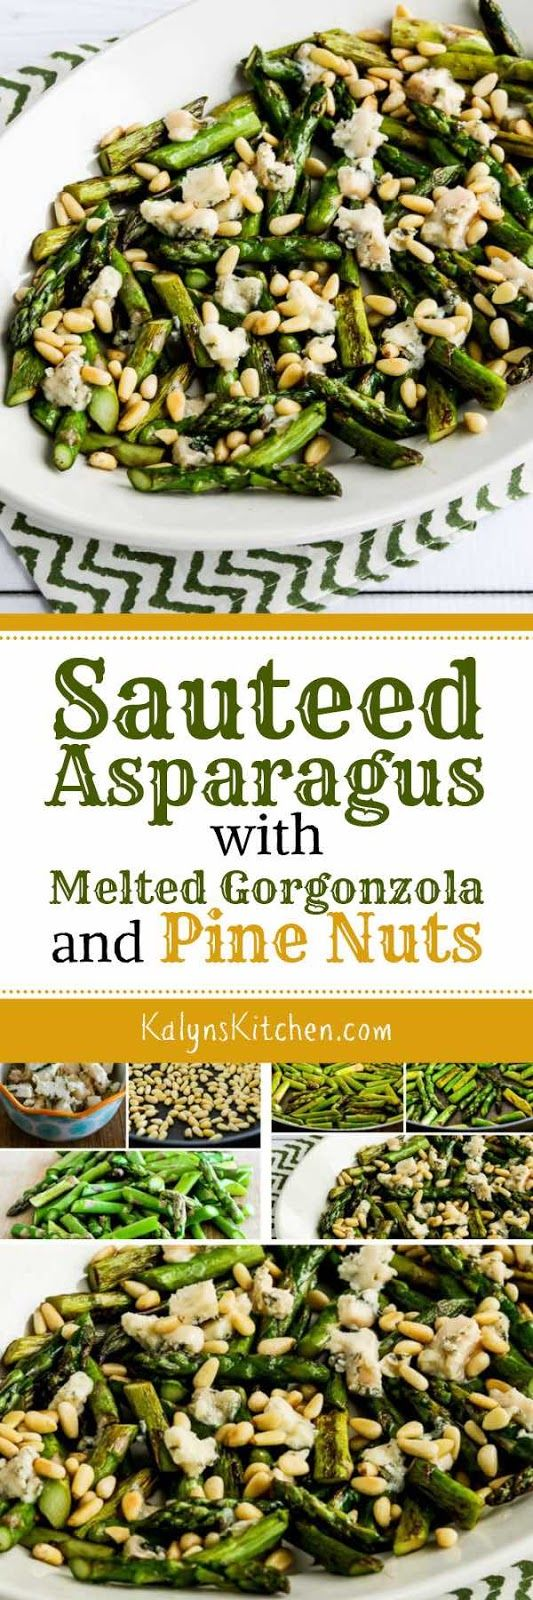 This Sauteed Asparagus with Melted Gorgonzola and Pine Nuts is absolutely a treat, and it only takes a few minutes to make! And this amazing side dish is low-carb, Keto, low-glycemic, gluten-free, and South Beach Diet friendly. [found on KalynsKitchen.com]